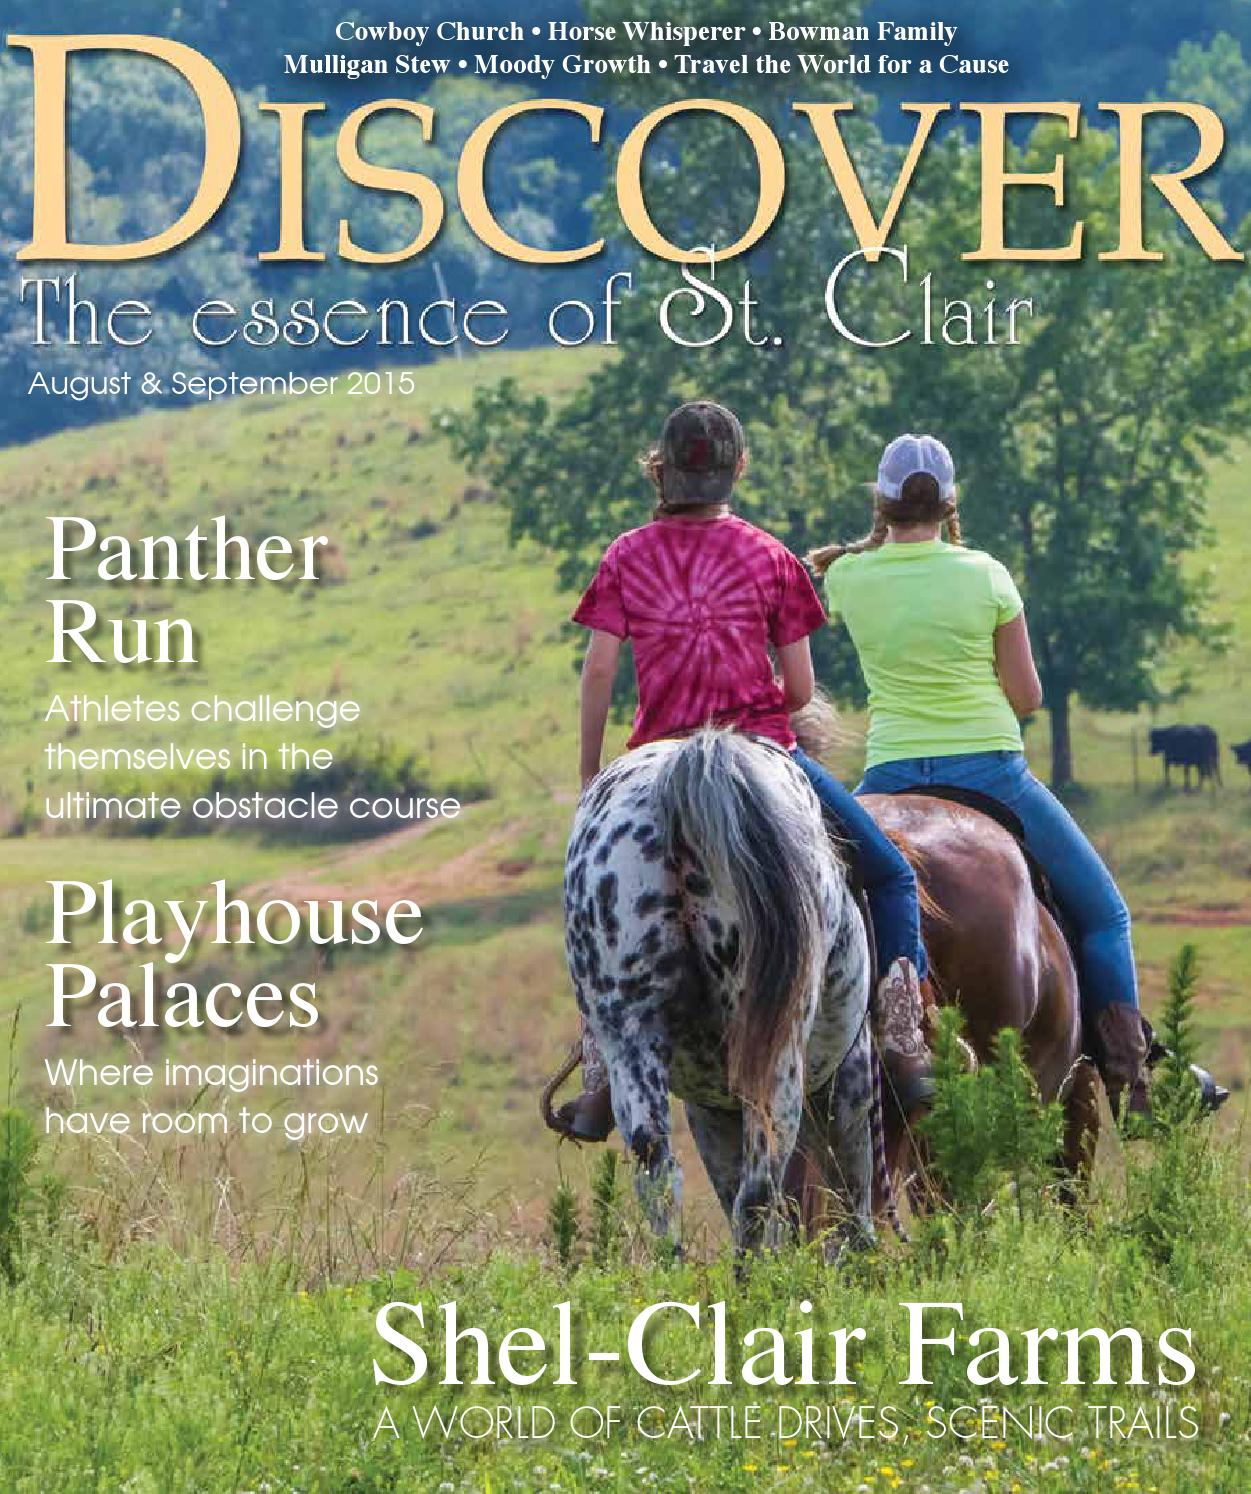 Alabama saint clair county odenville - Discover St Clair August September 2015 By Discover The Essence Of St Clair Issuu